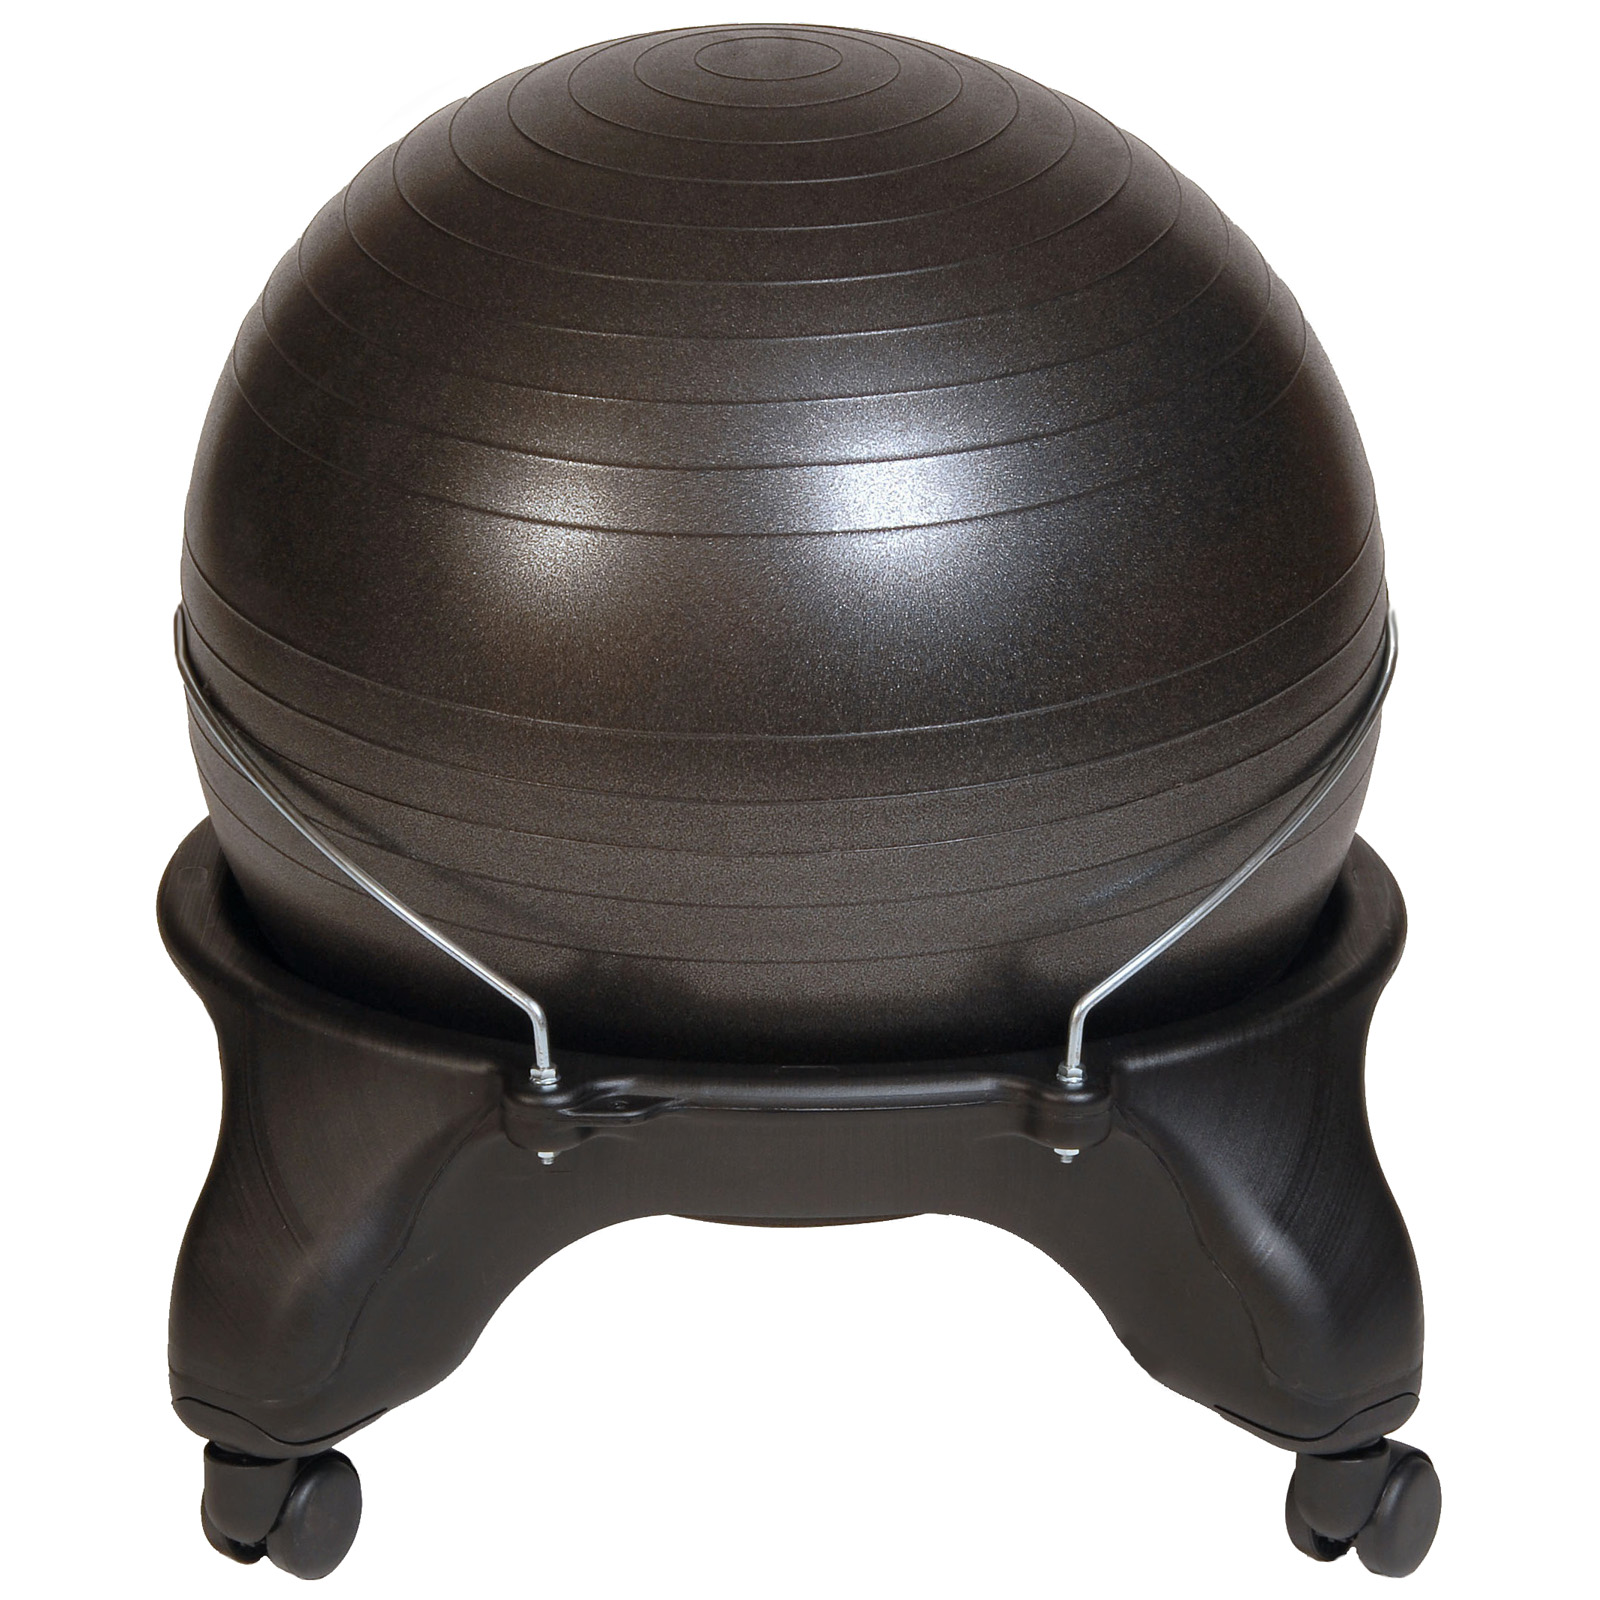 Balance Ball Chair Base Yoga Ball Chair Base | Design Ideas for House